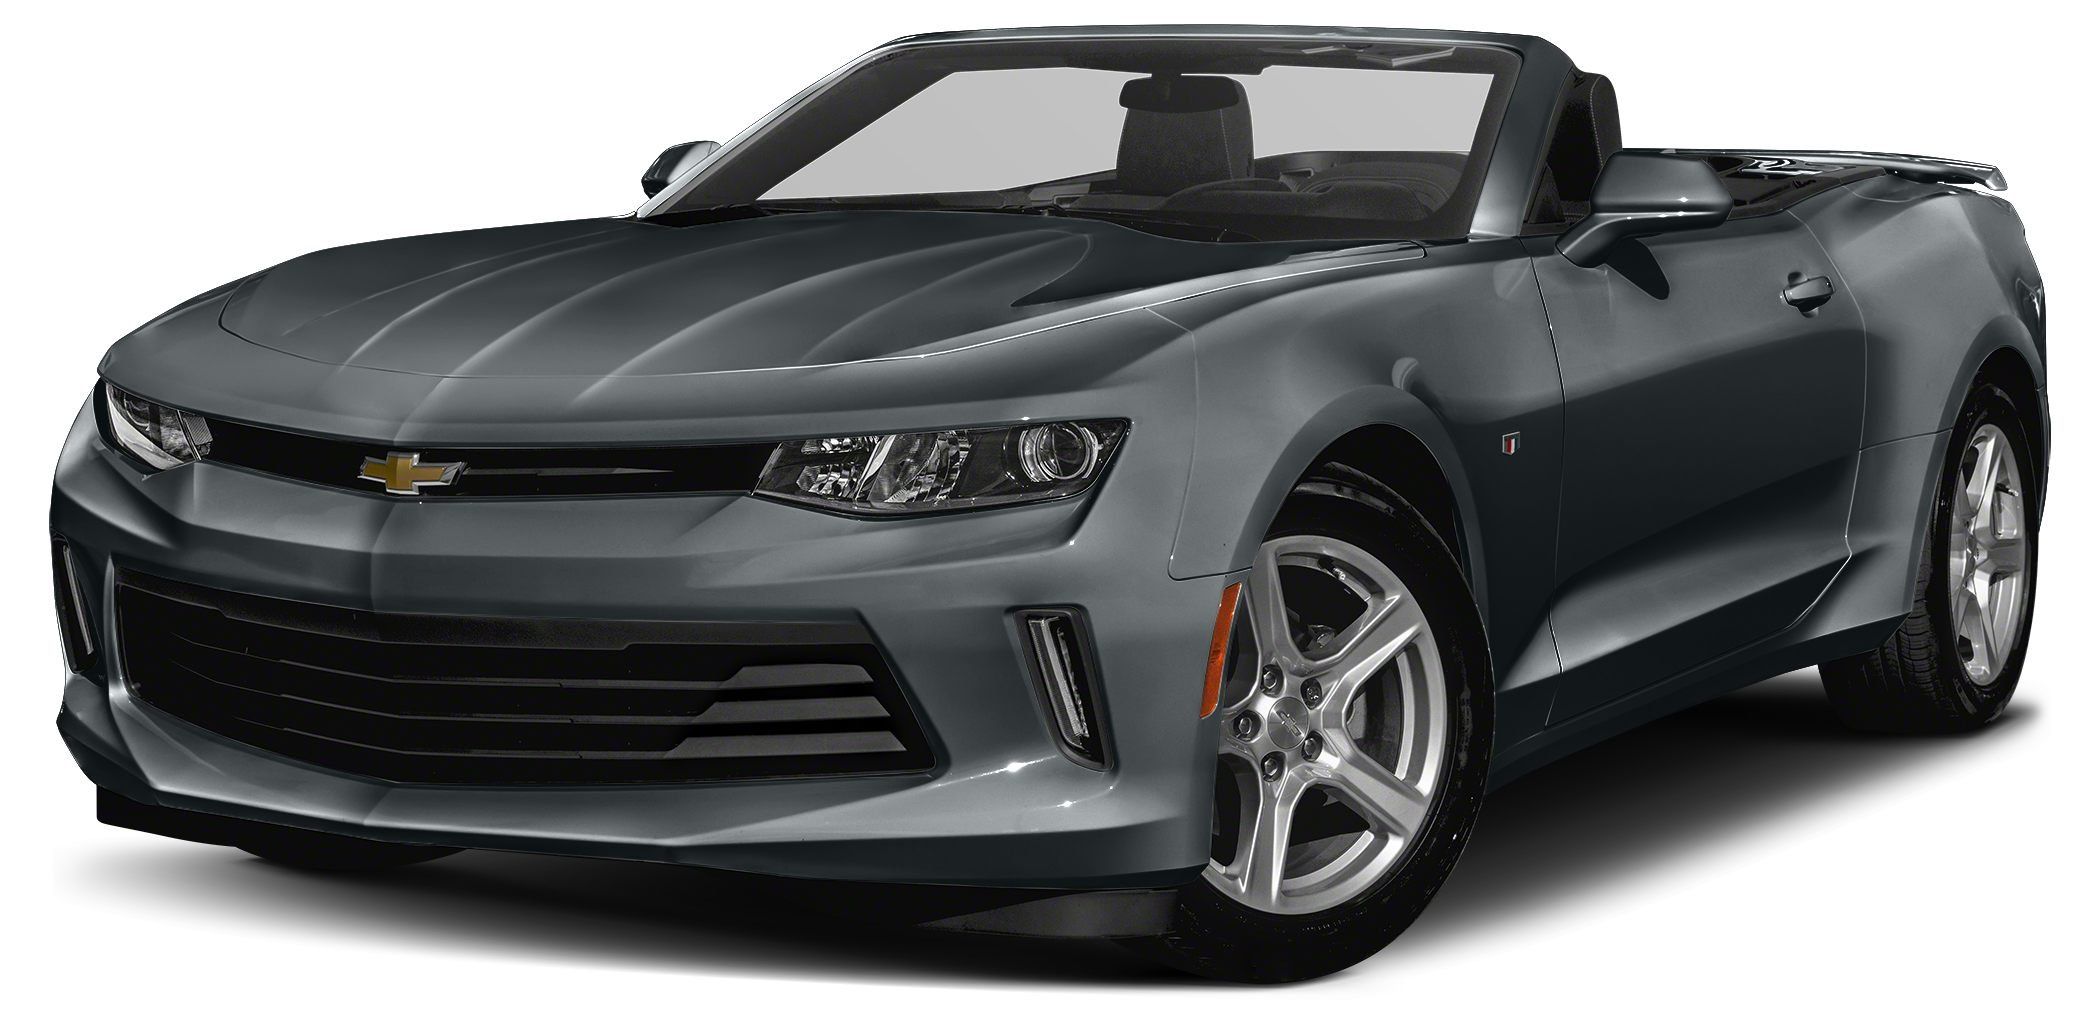 2017 Chevrolet Camaro LT w2LT The 2017 Camaro is a perfect formula of performance technology met